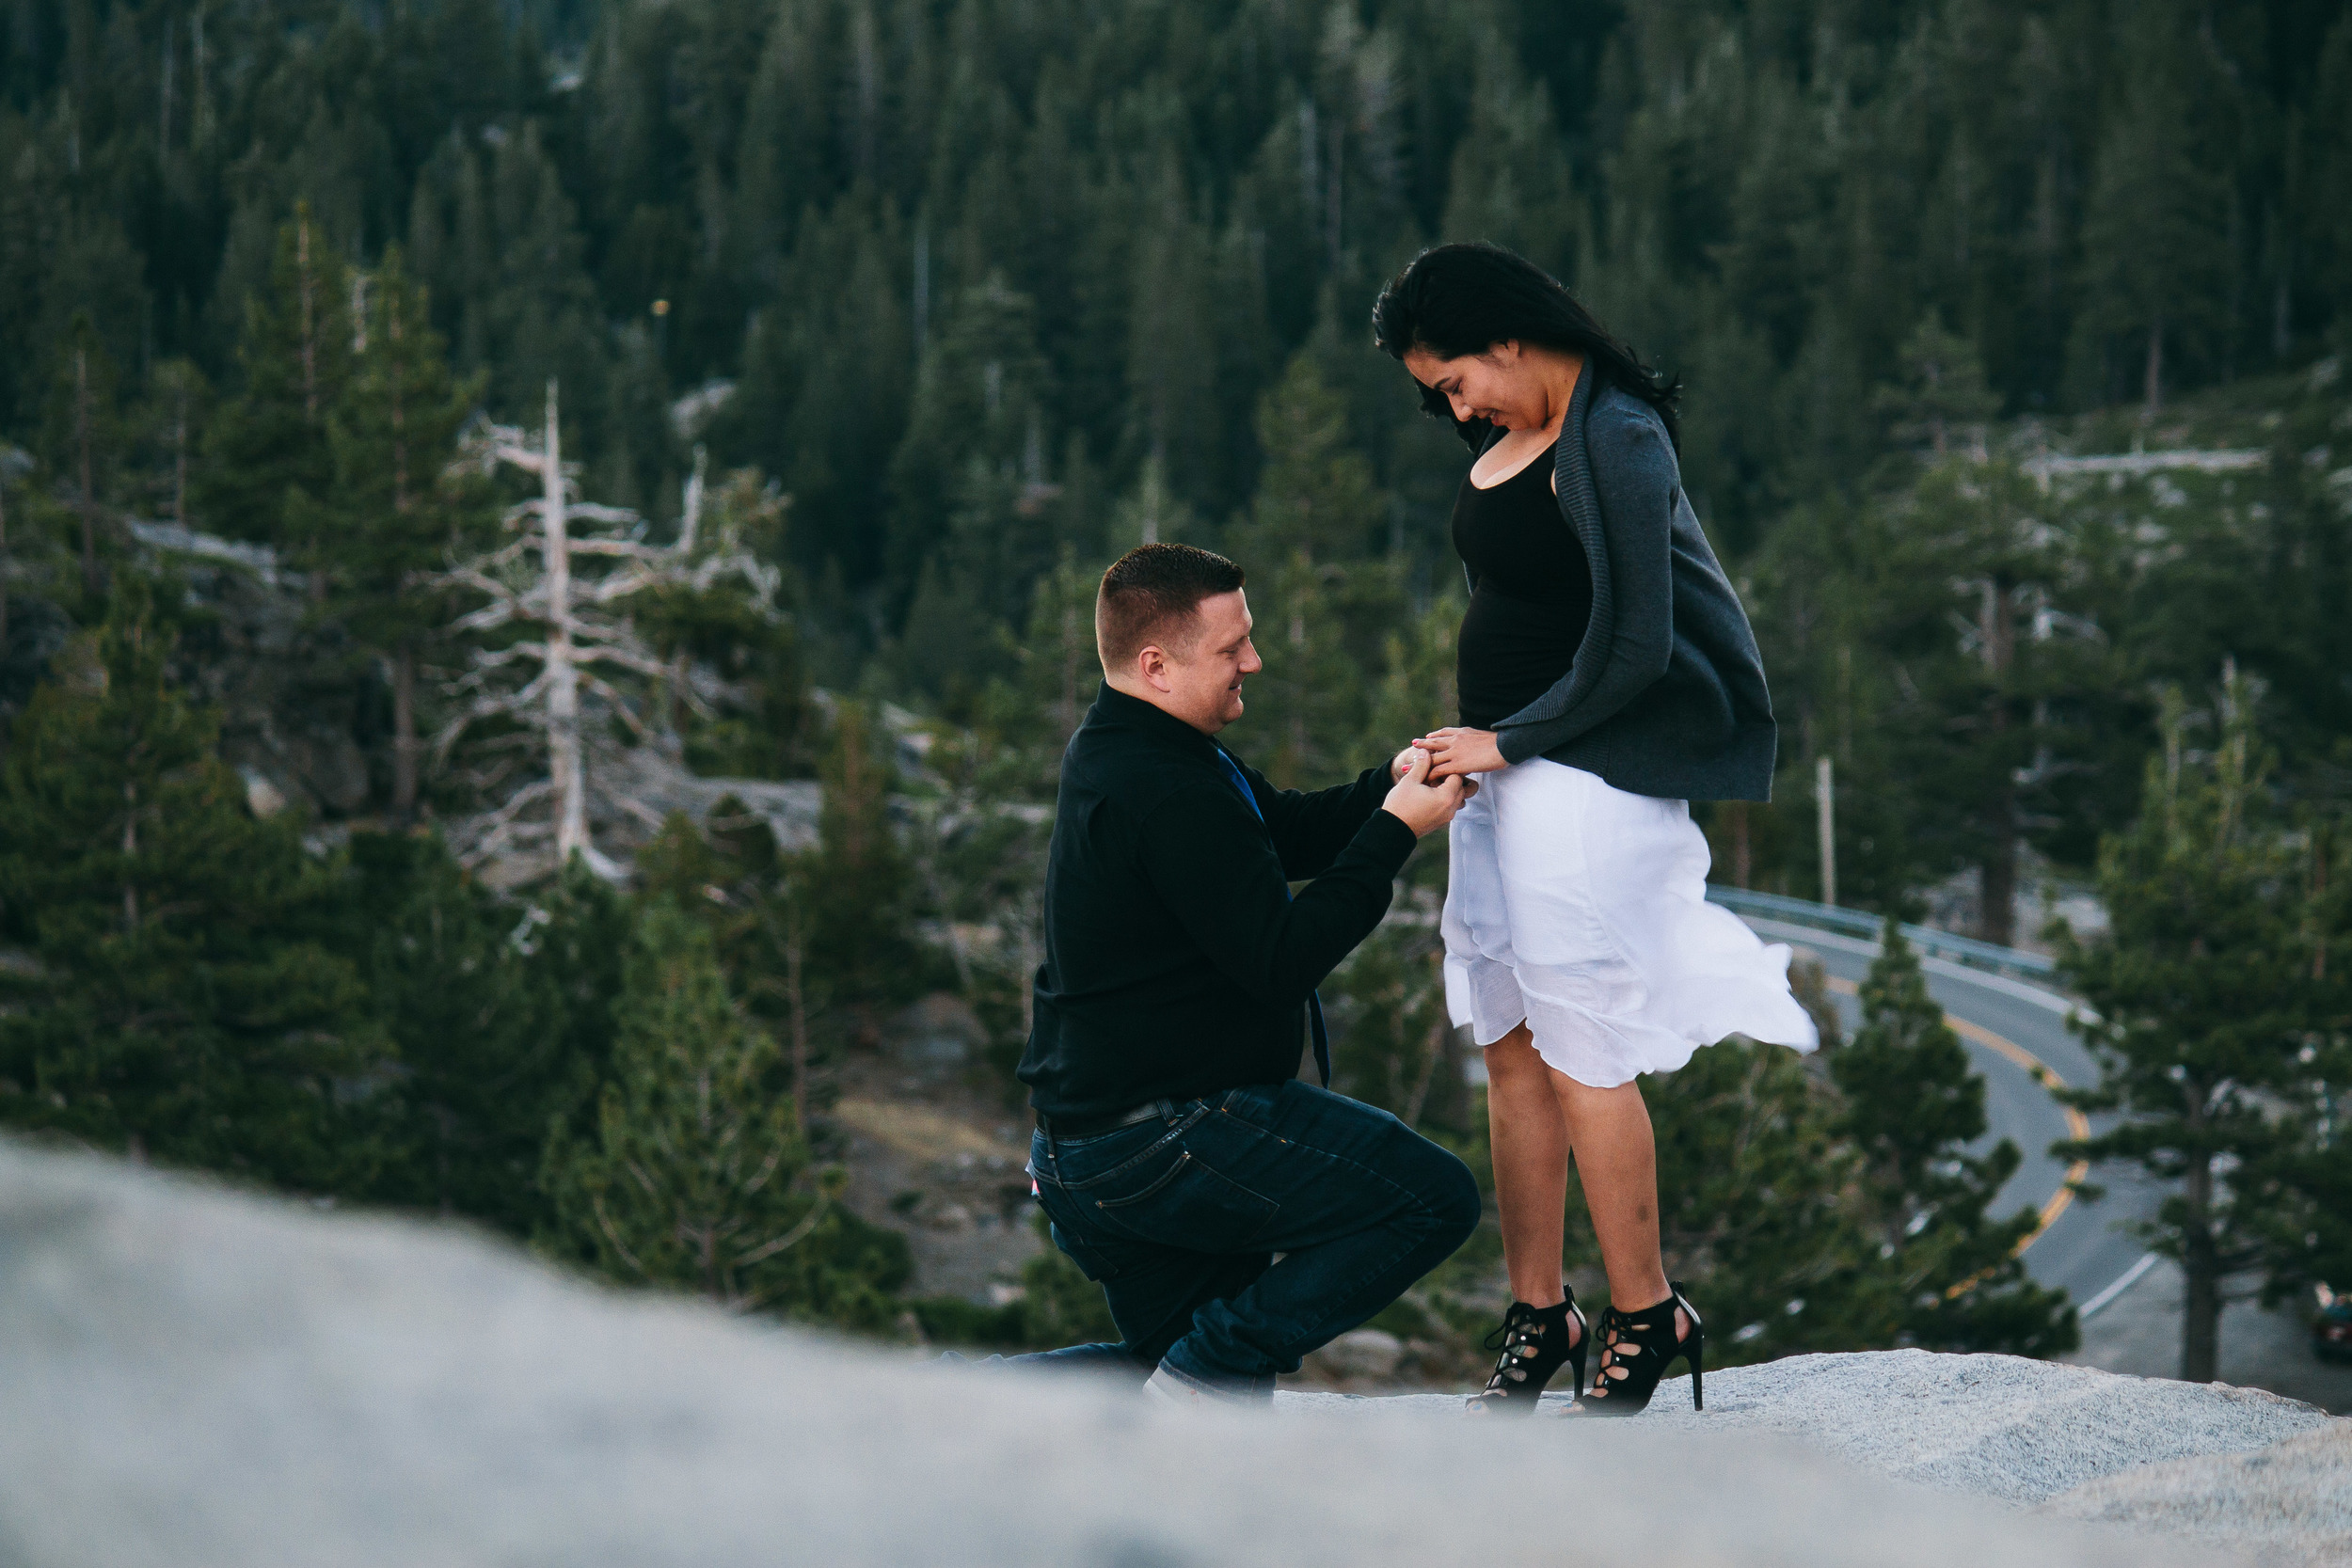 Clint & Veronica's Proposal - Corrie Mick Photography-18.jpg